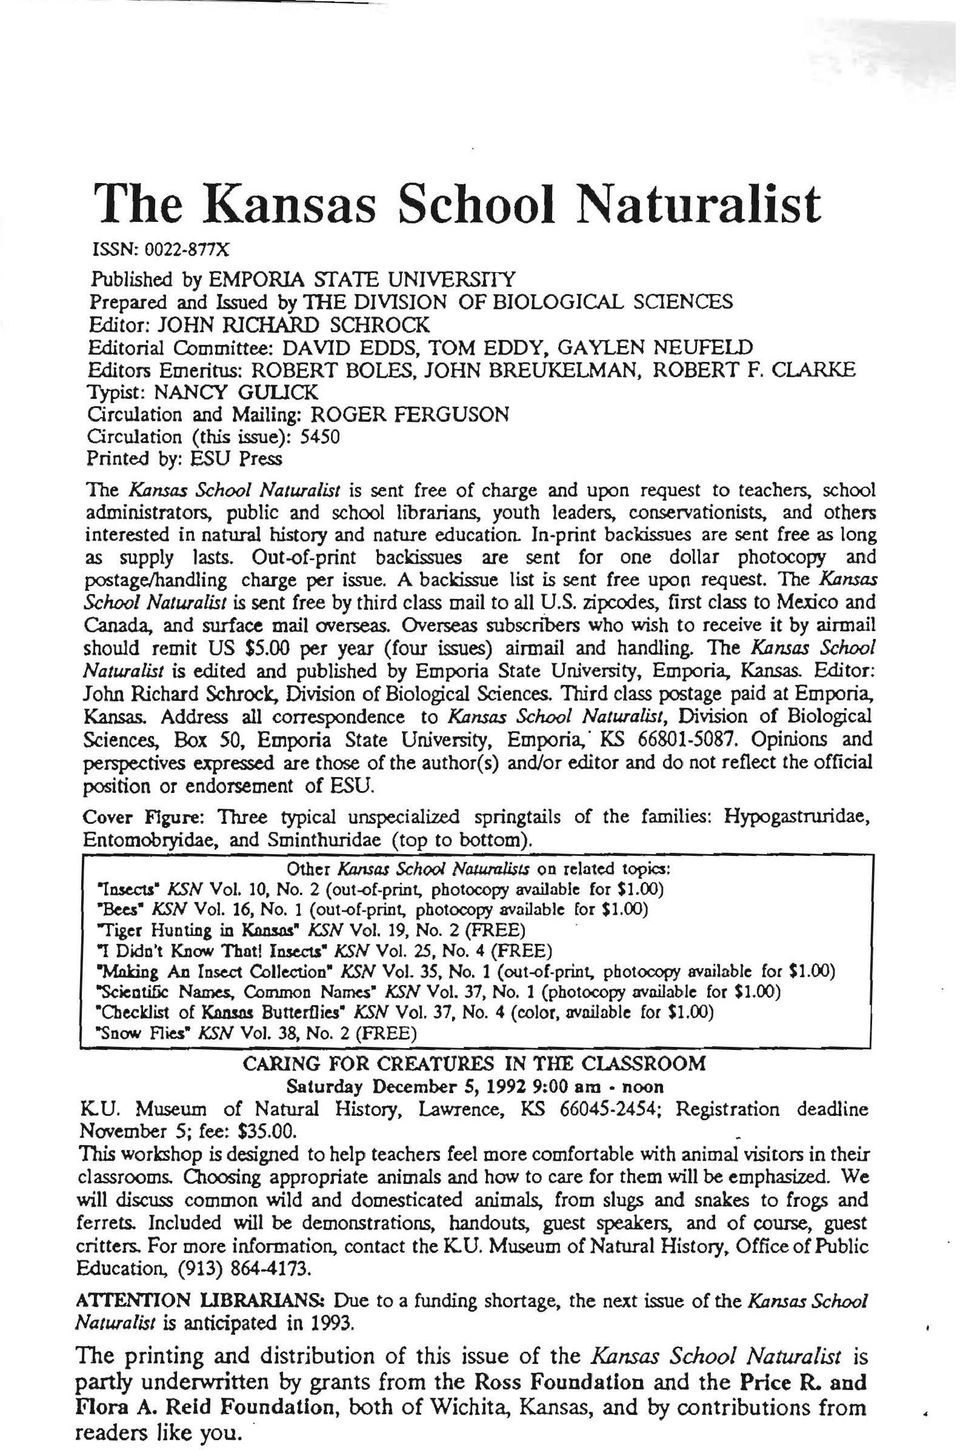 CLARKE Typist: NANCY GUUCK Circulation and Mailing: ROGER FERGUSON Circulation (this issue): 5450 Printed by: ESU Press The Kansas School Naturalist is sent free of charge and upon request to